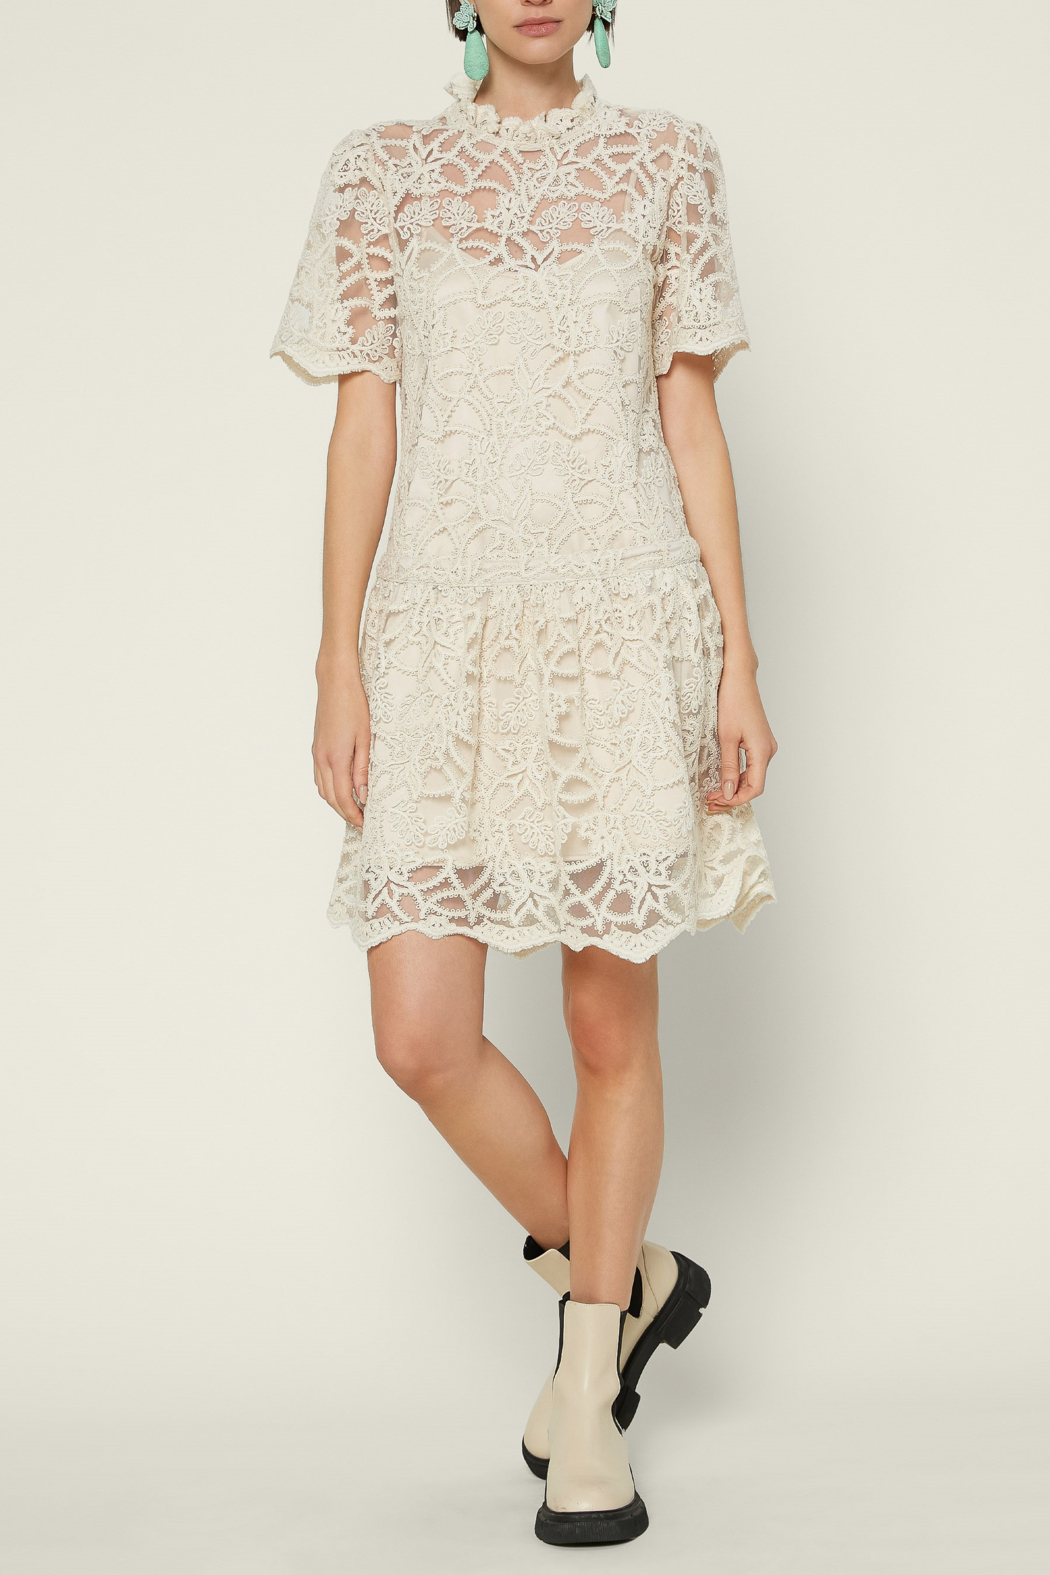 Current Air  Embellished Lace Mini Dress - Main Image